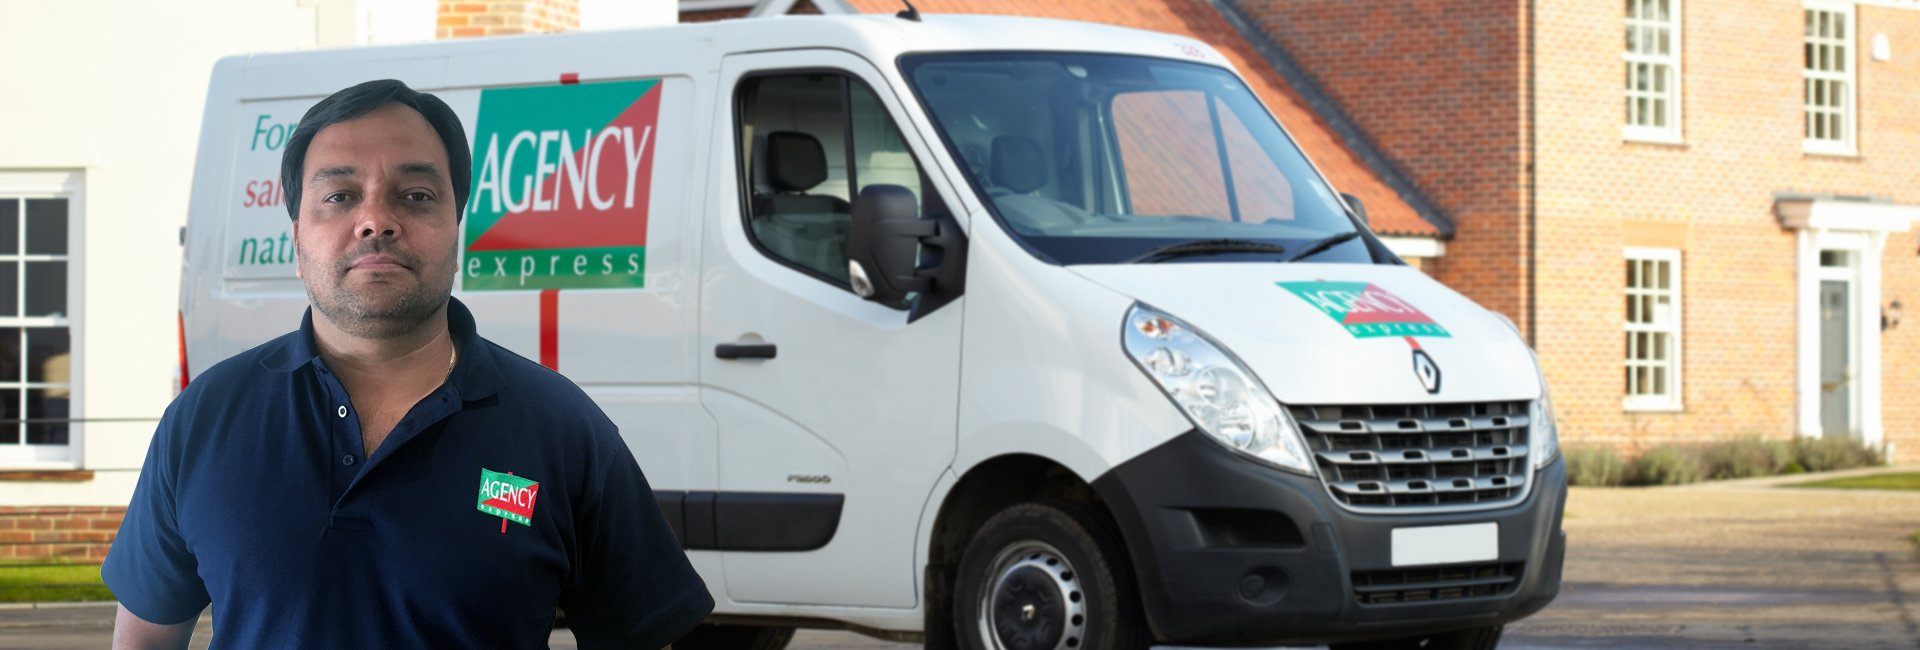 Agency Express franchise case study. Franchisee Bert Bigaignon with van.